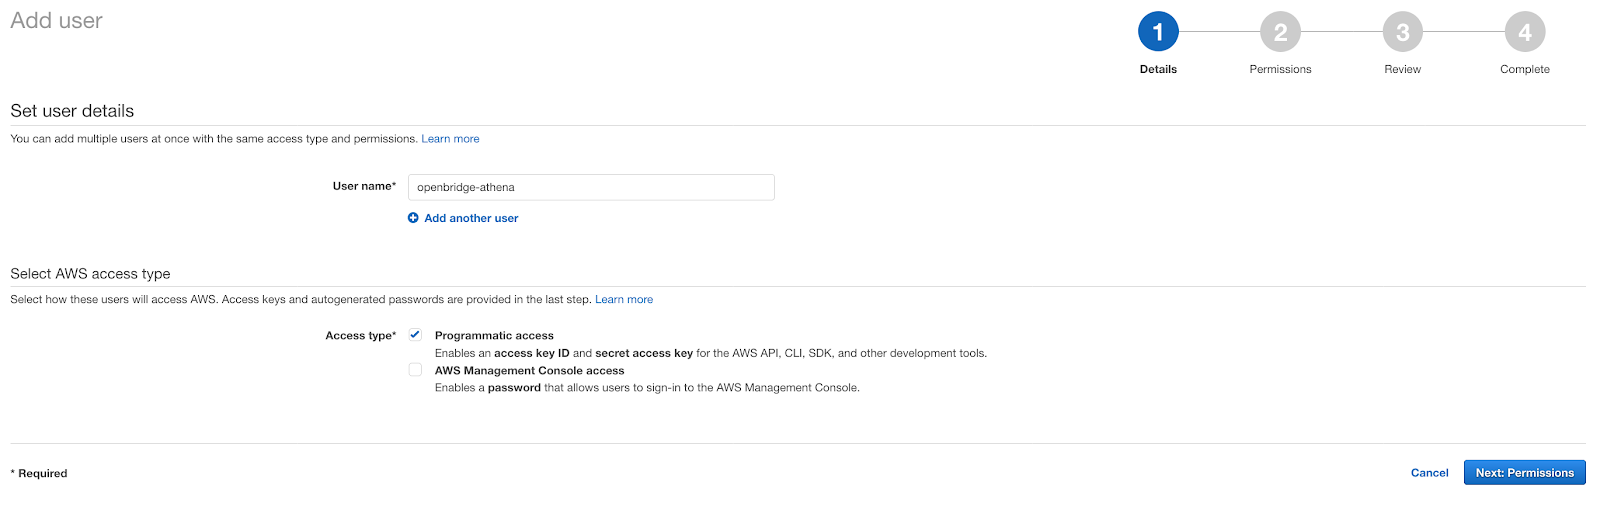 How To Setup Amazon Redshift Spectrum - Configuring S3 and